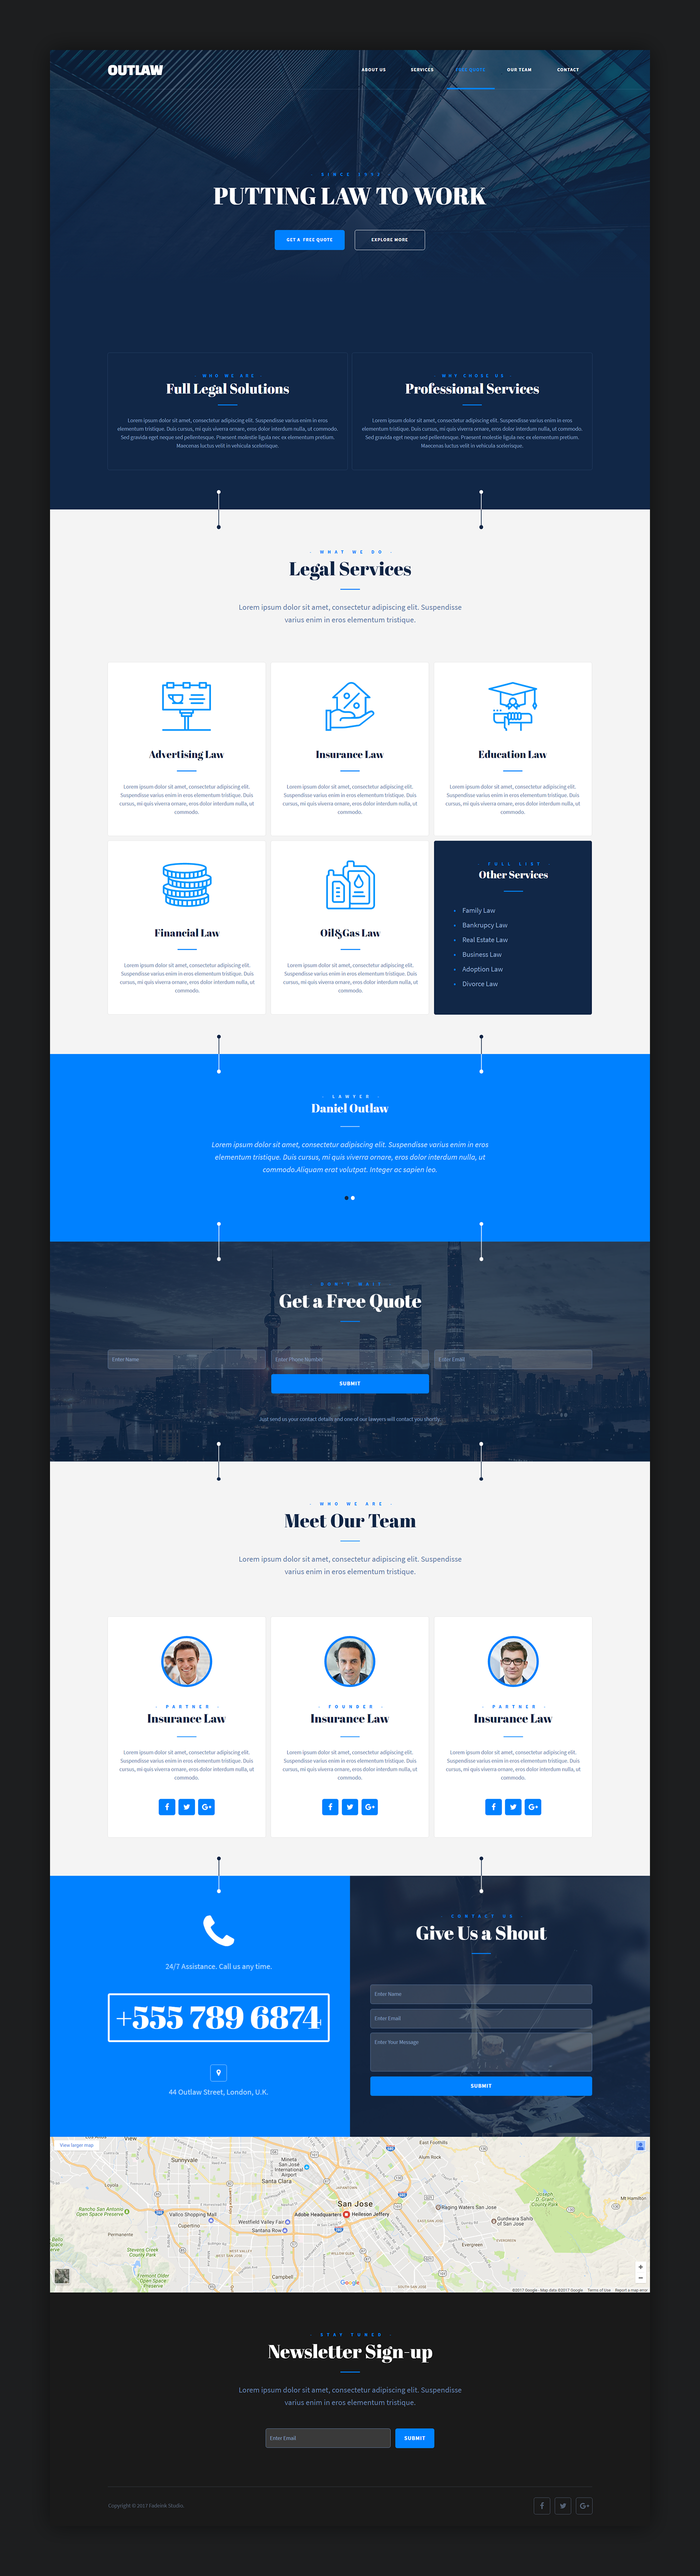 Ourlaw muse landing page template full preview